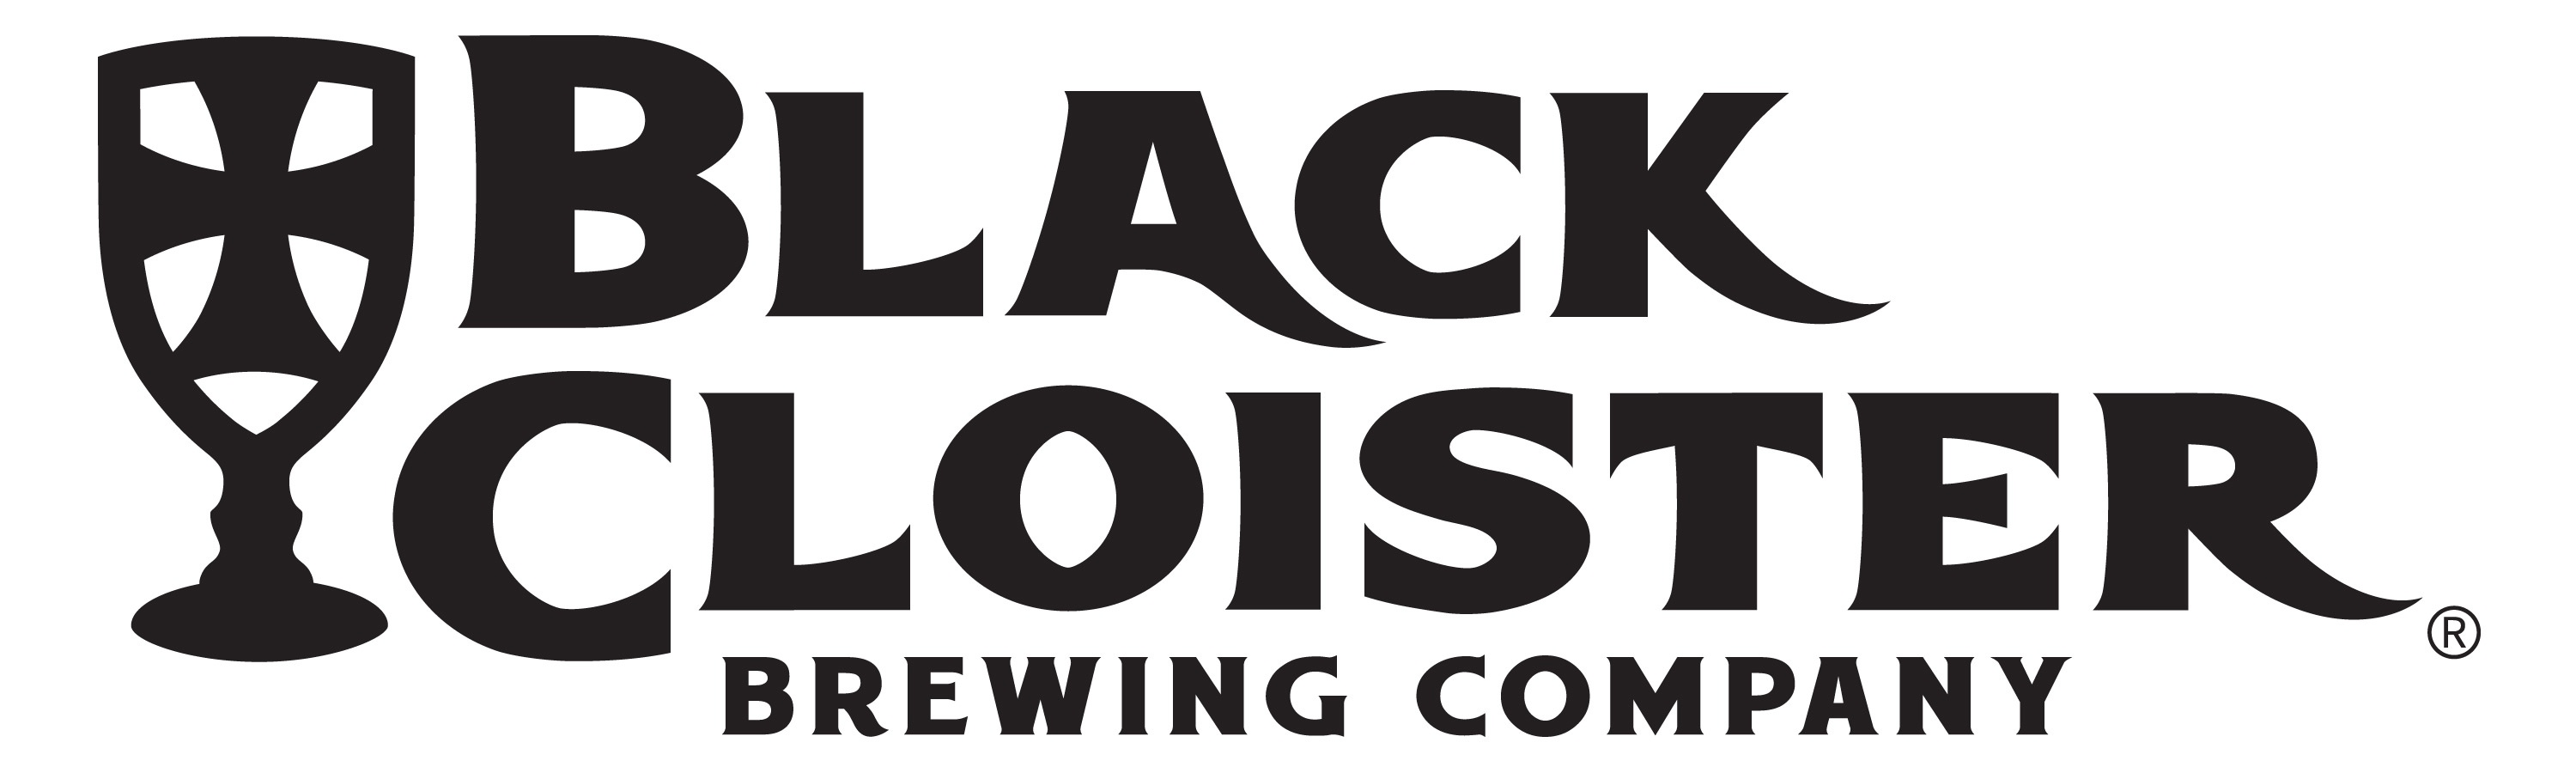 Black Cloister Brewing Company Brewery Tours | Explore The State: Brewery Tours in Ohio